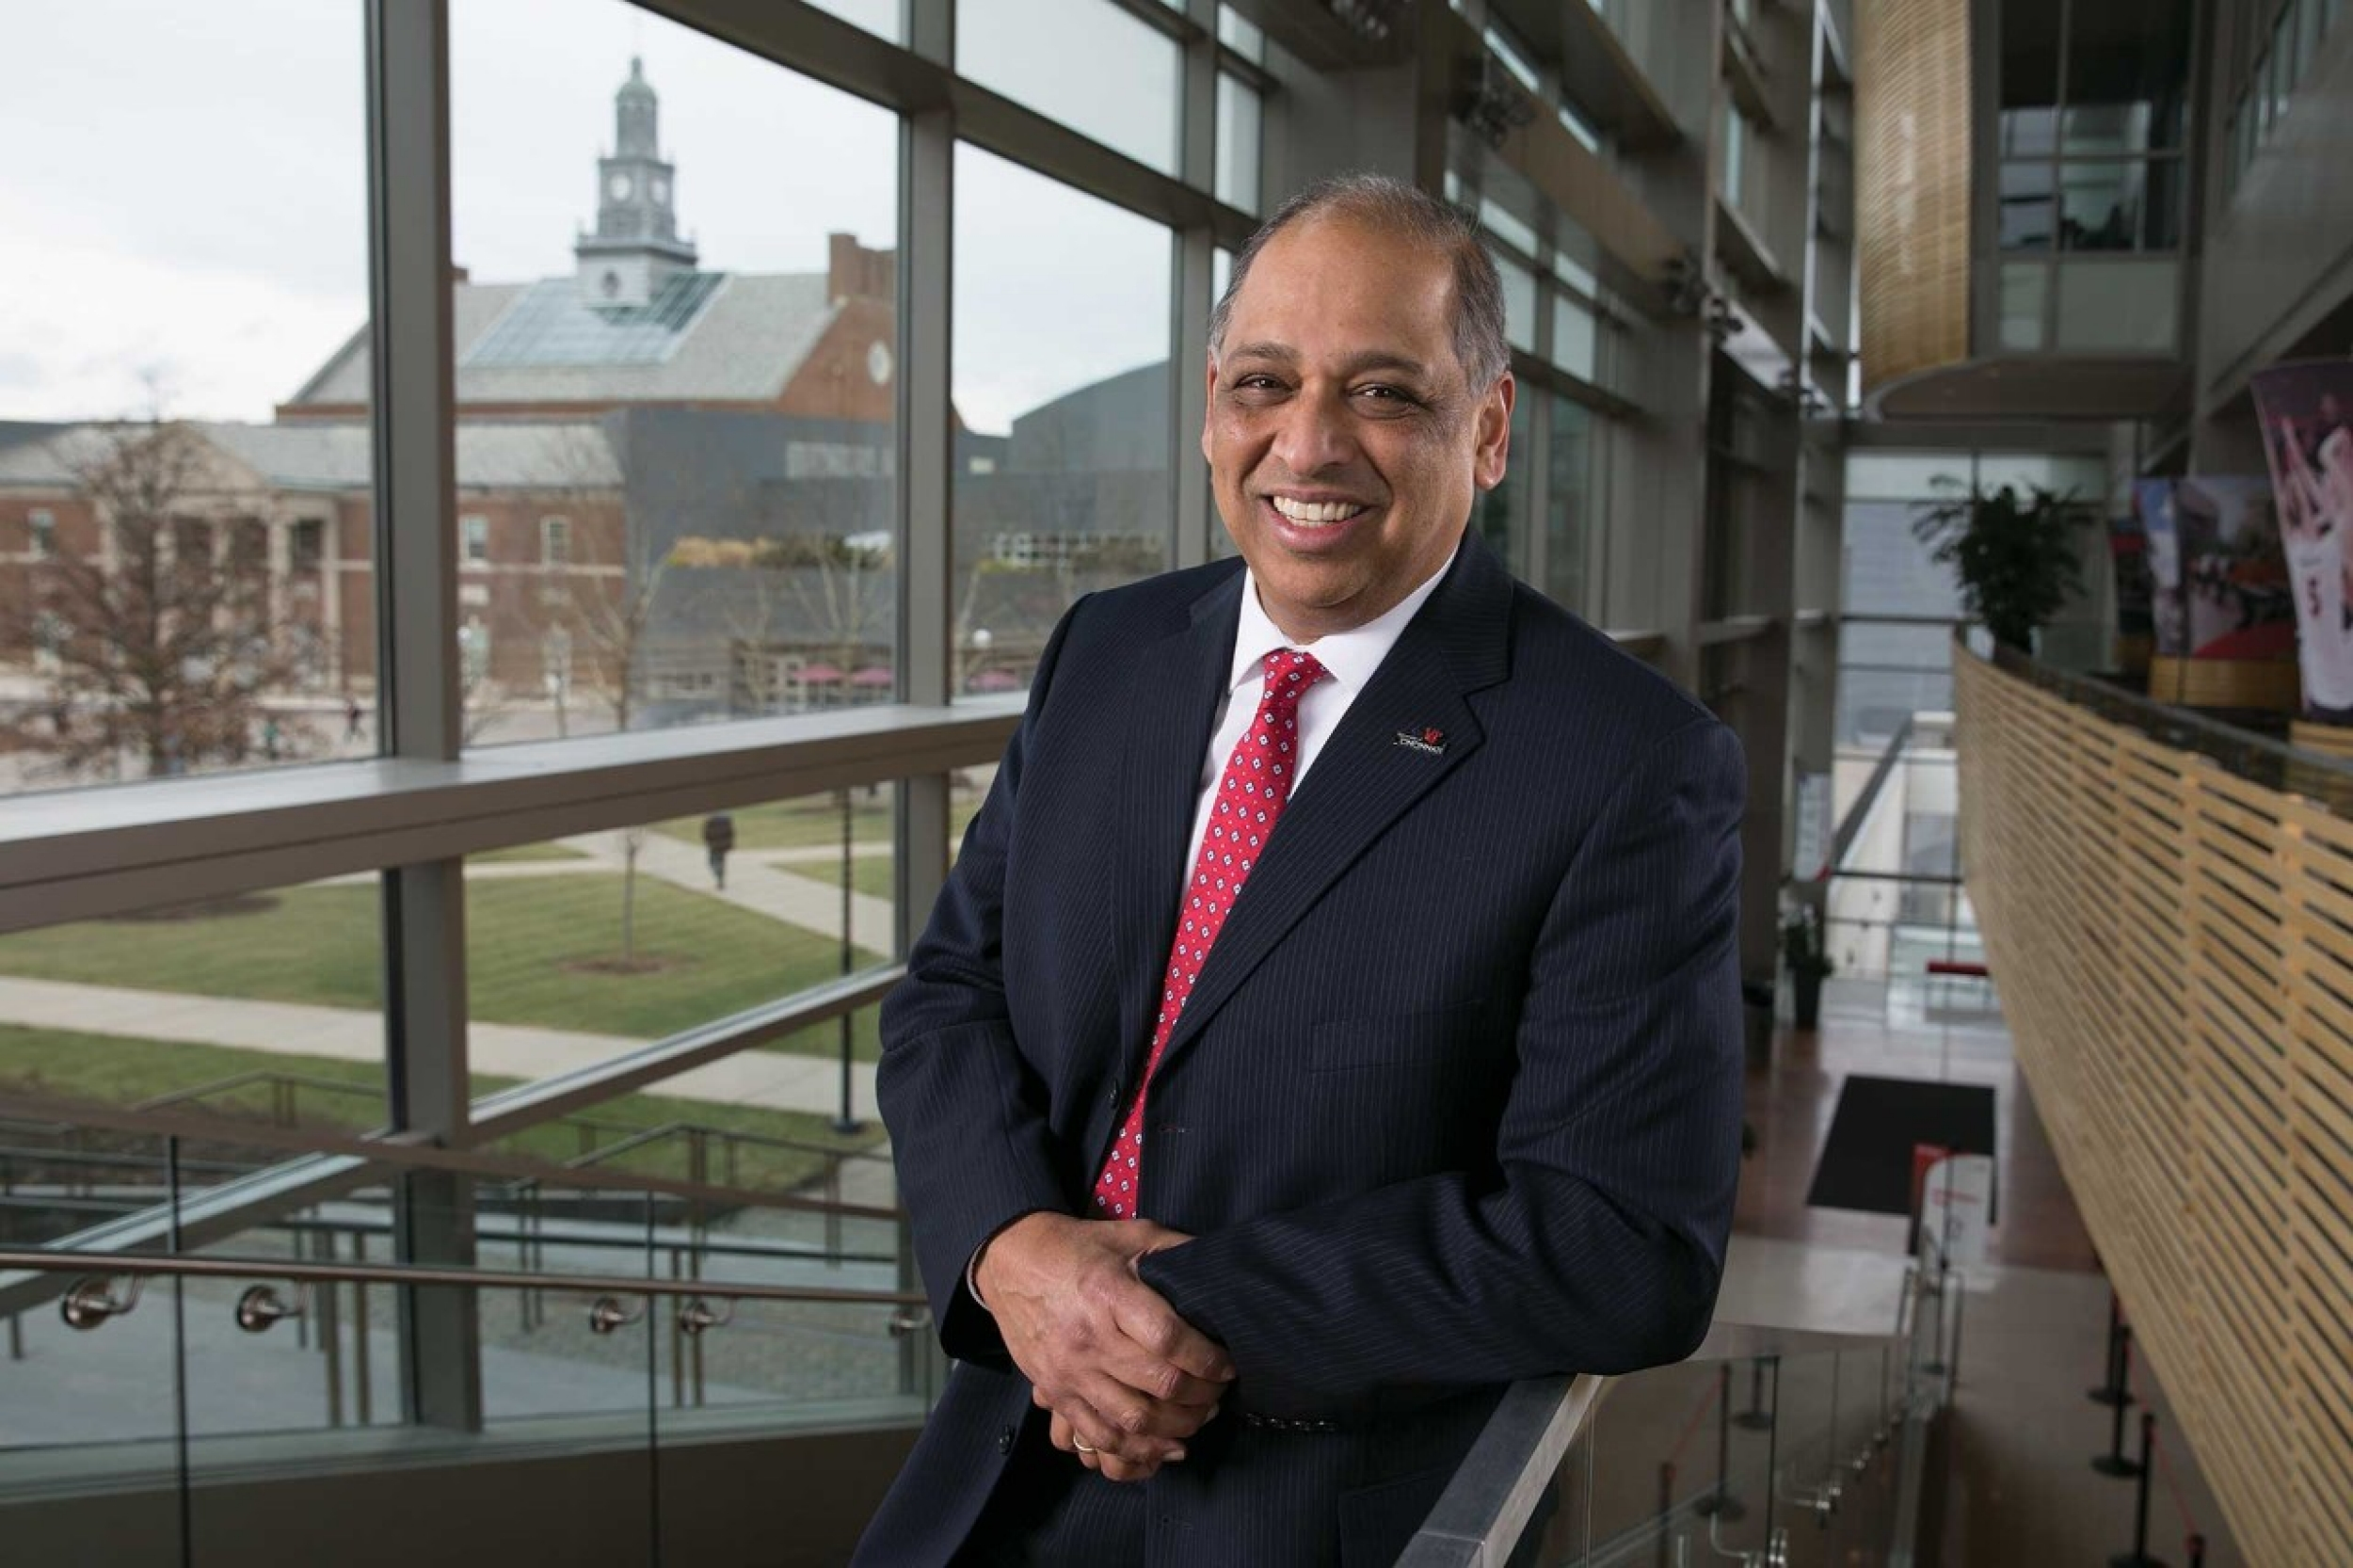 Portrait of President Pinto leaning on the staircase of University Pavilion with campus in the background.